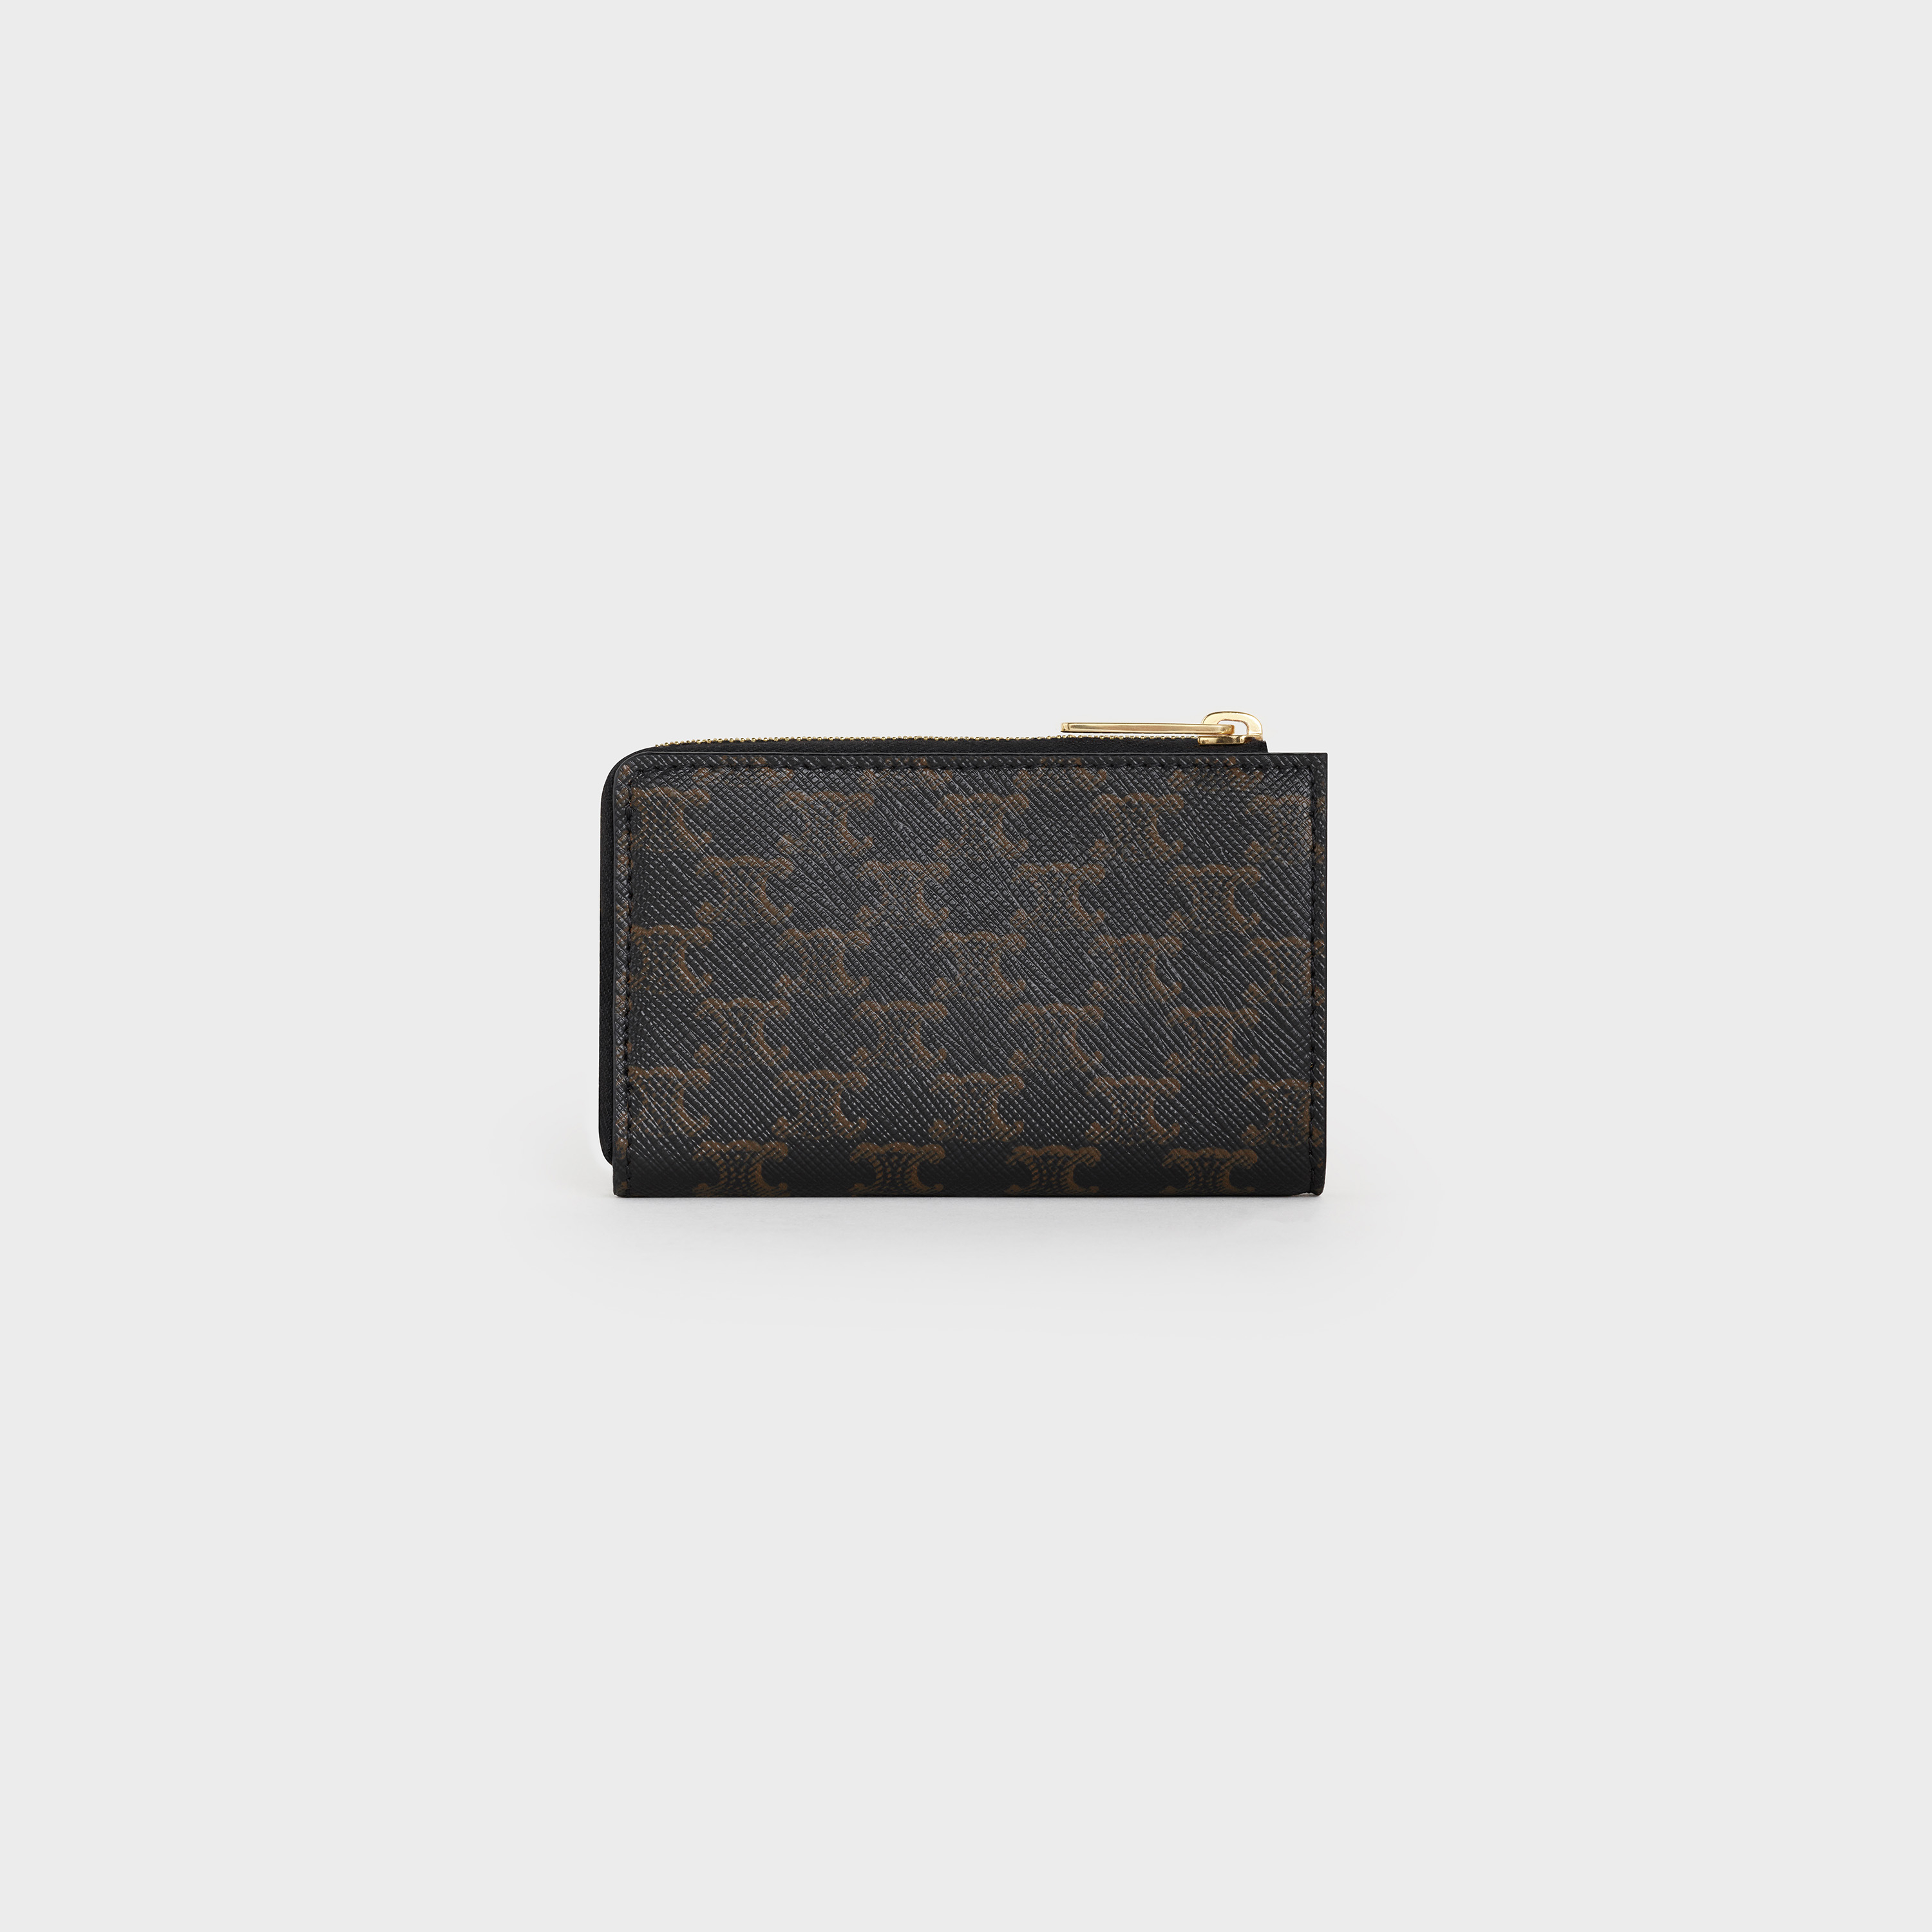 Black and Gold Purse with coin purse